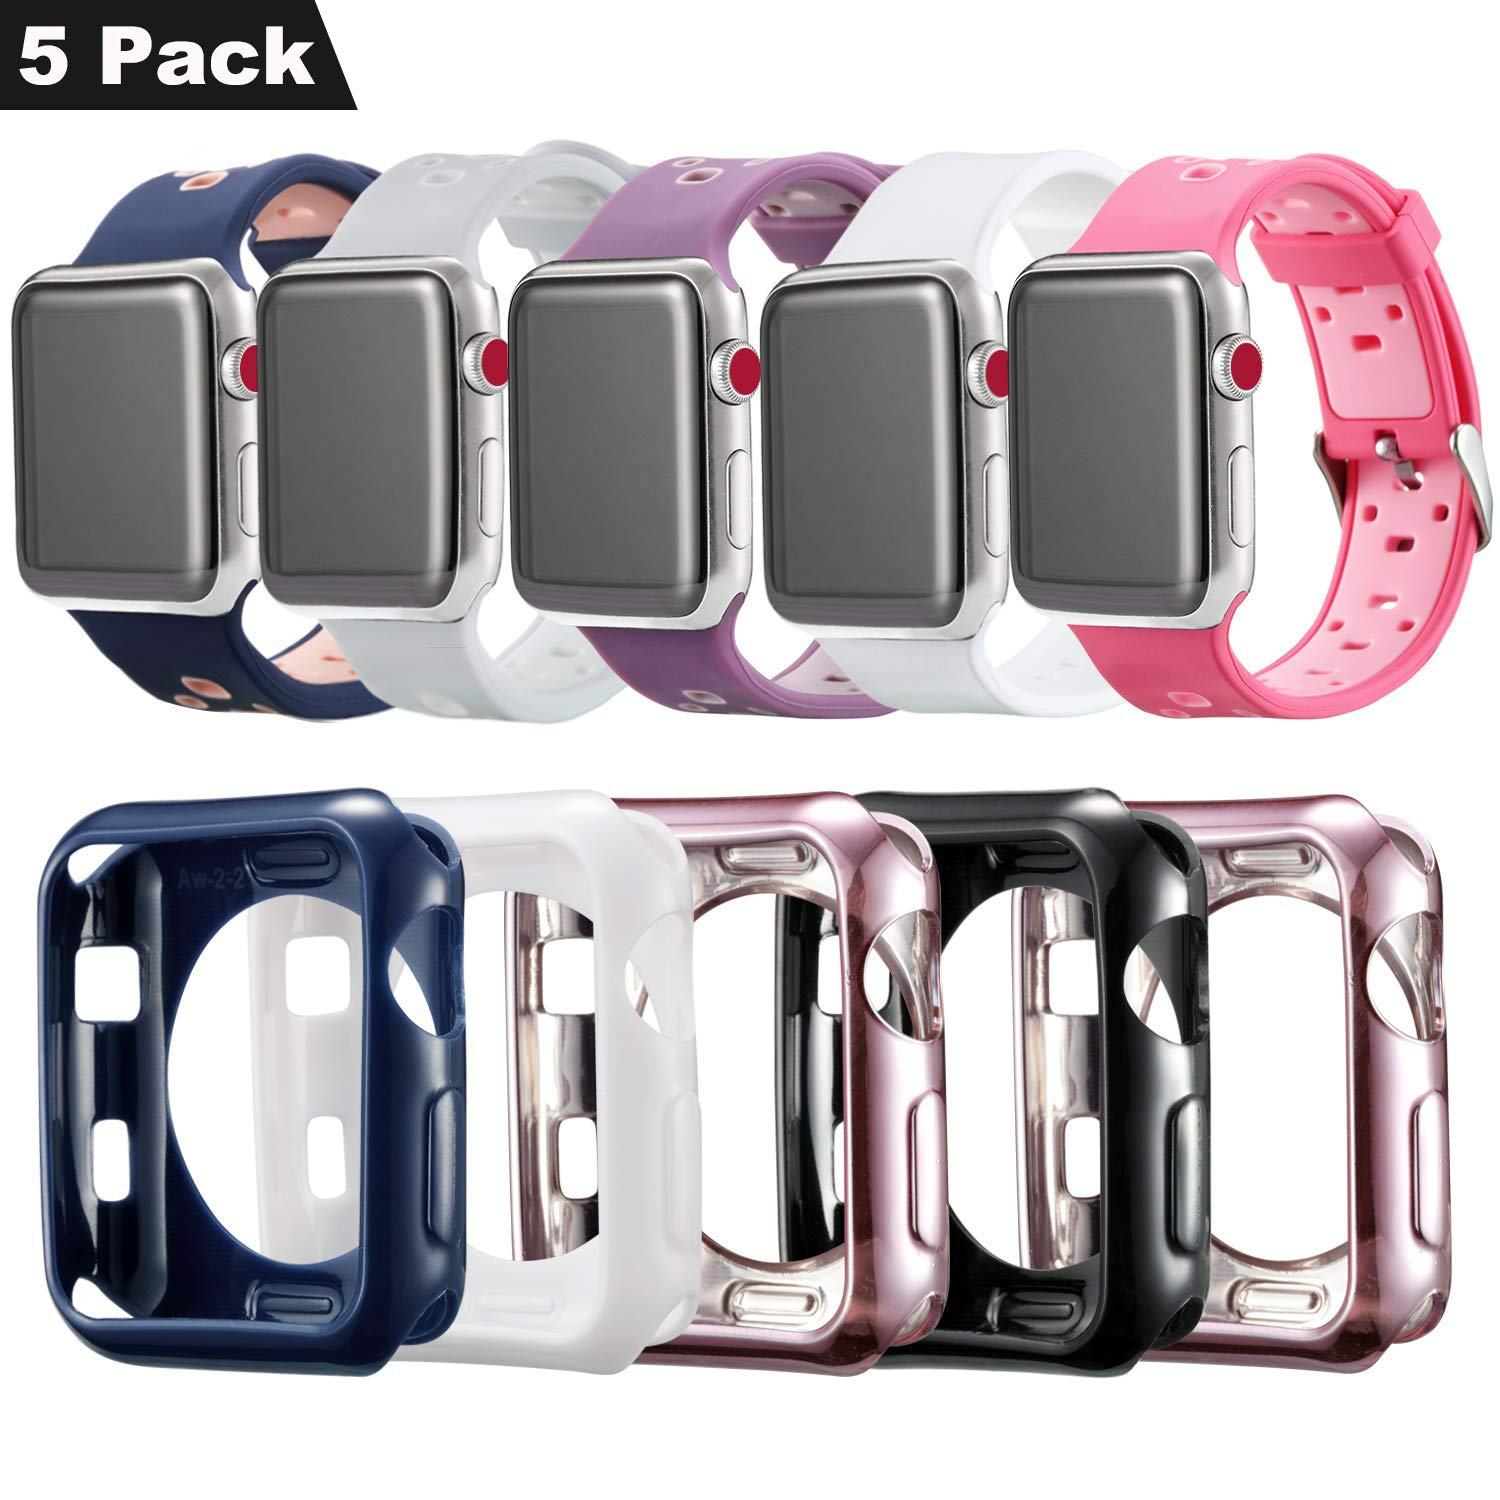 Compatible Apple Watch Band with Case 38mm [5 Pack], MAIRUI Protective Case Bumper Cover Silicone Replacement for Apple Watch Series 3/2/1, iWatch Sport/Edition/Nike+ by MAIRUI